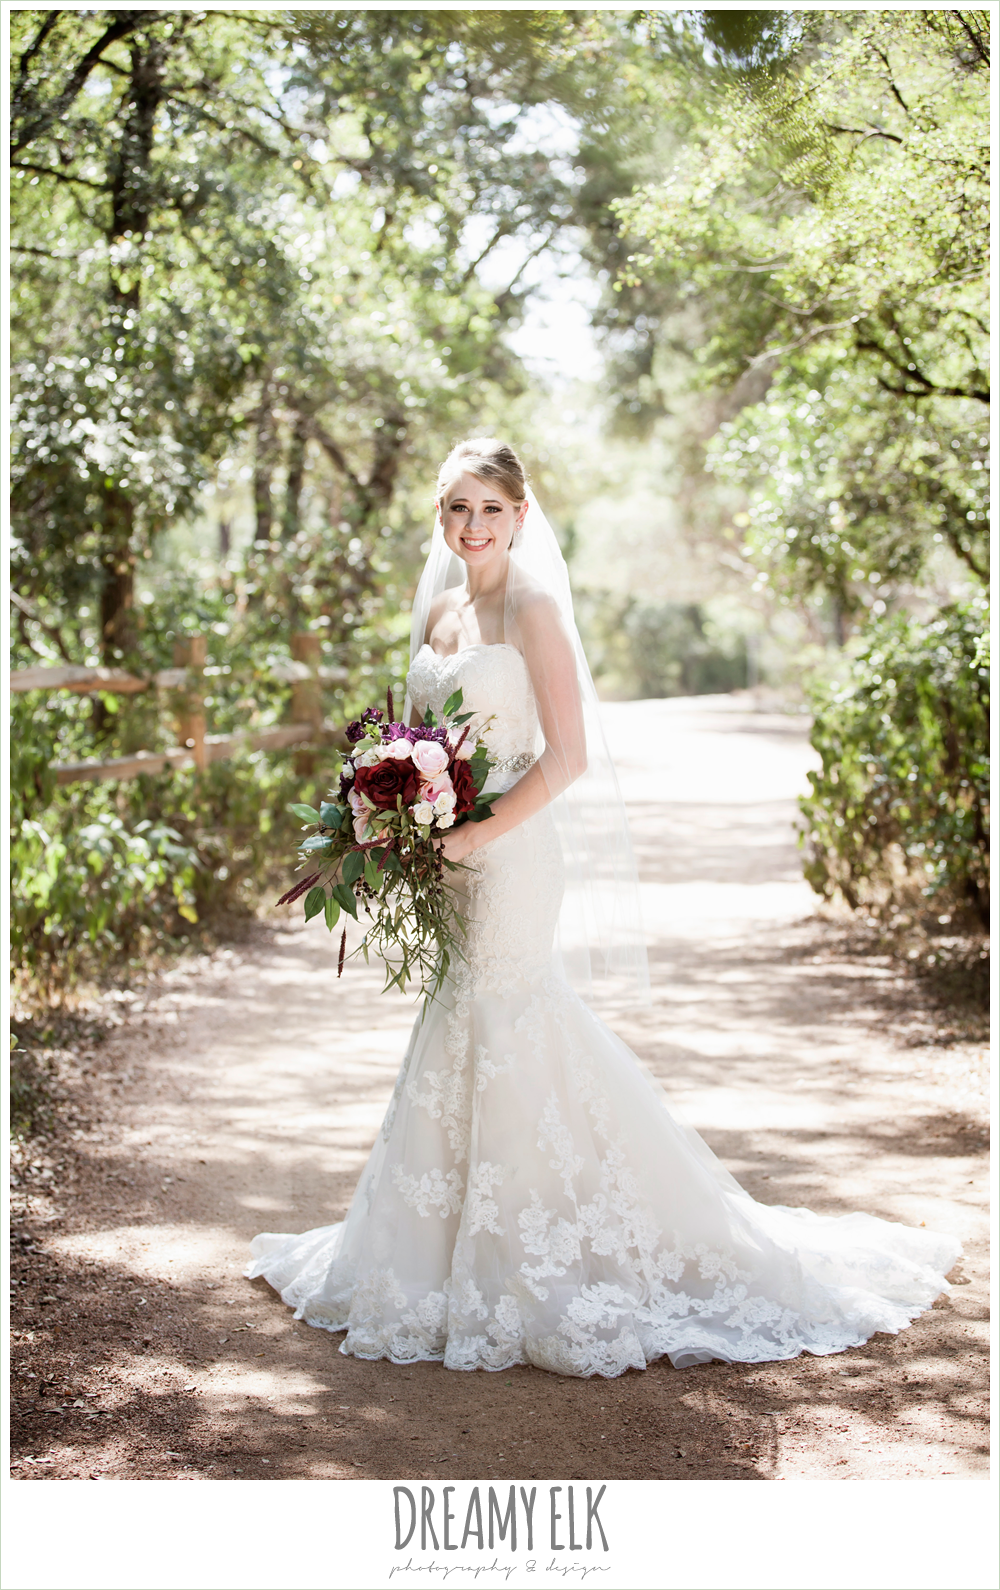 mermaid lace strapless wedding dress, summer outdoor bridal photos, zilker botanical gardens, austin, texas {dreamy elk photography and design}